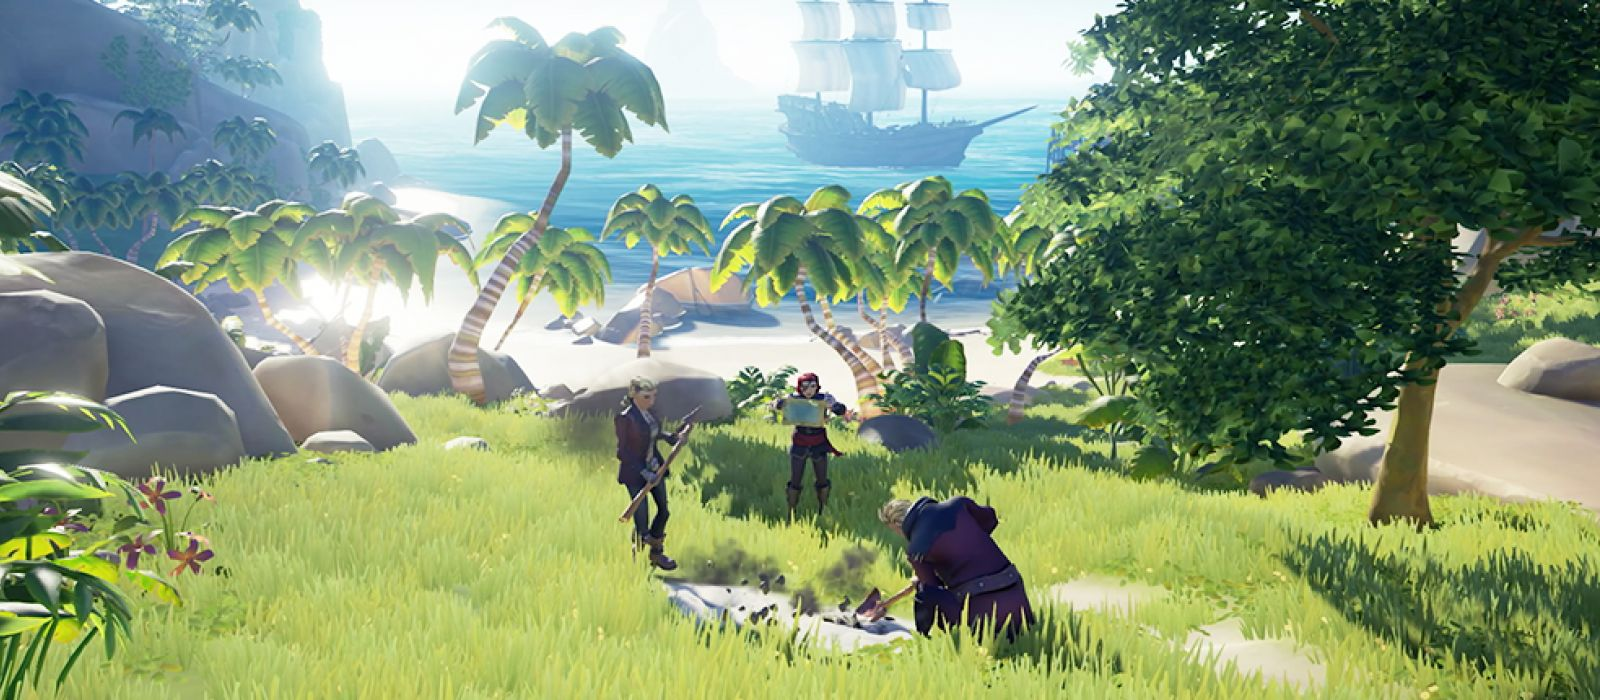 Новое видео Sea of Thieves посвятили ресурсам